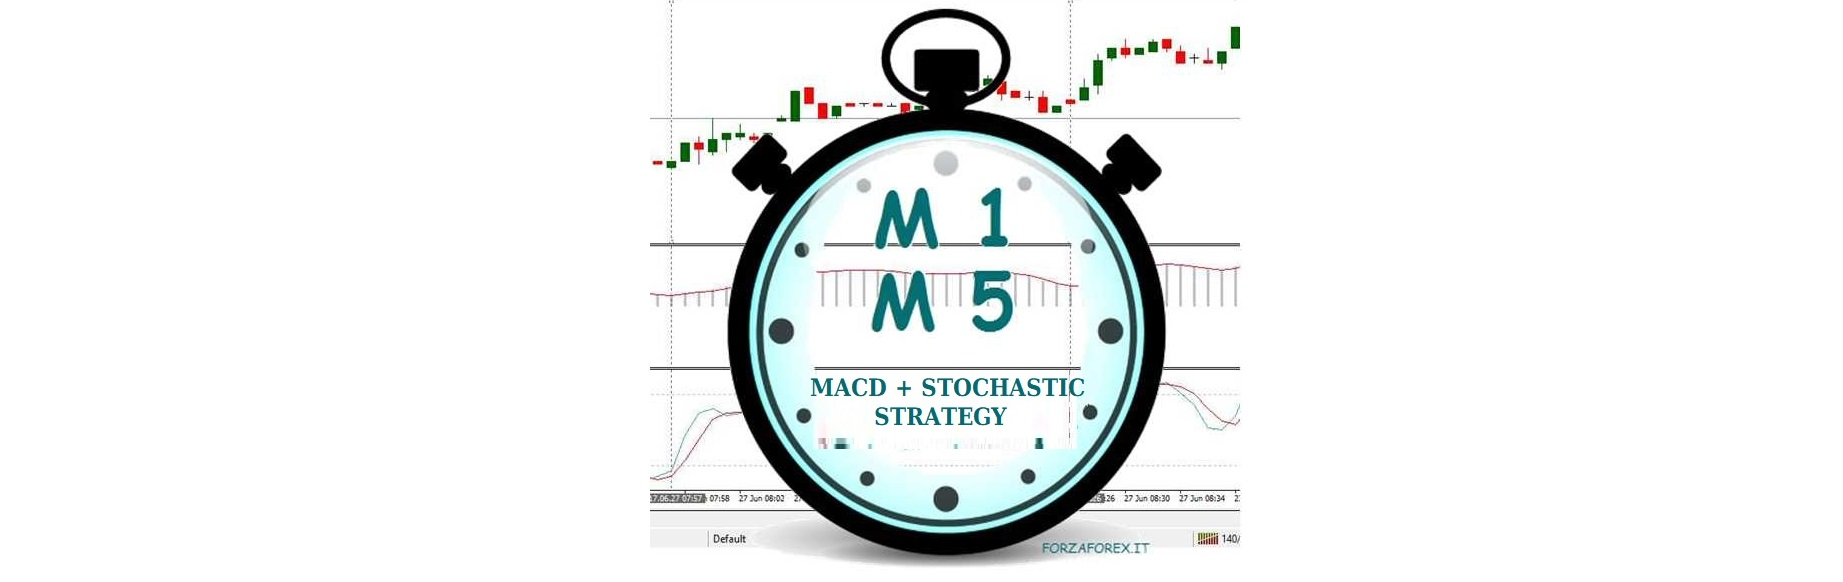 MACD STOCHASTIC TURBO STRATEGY